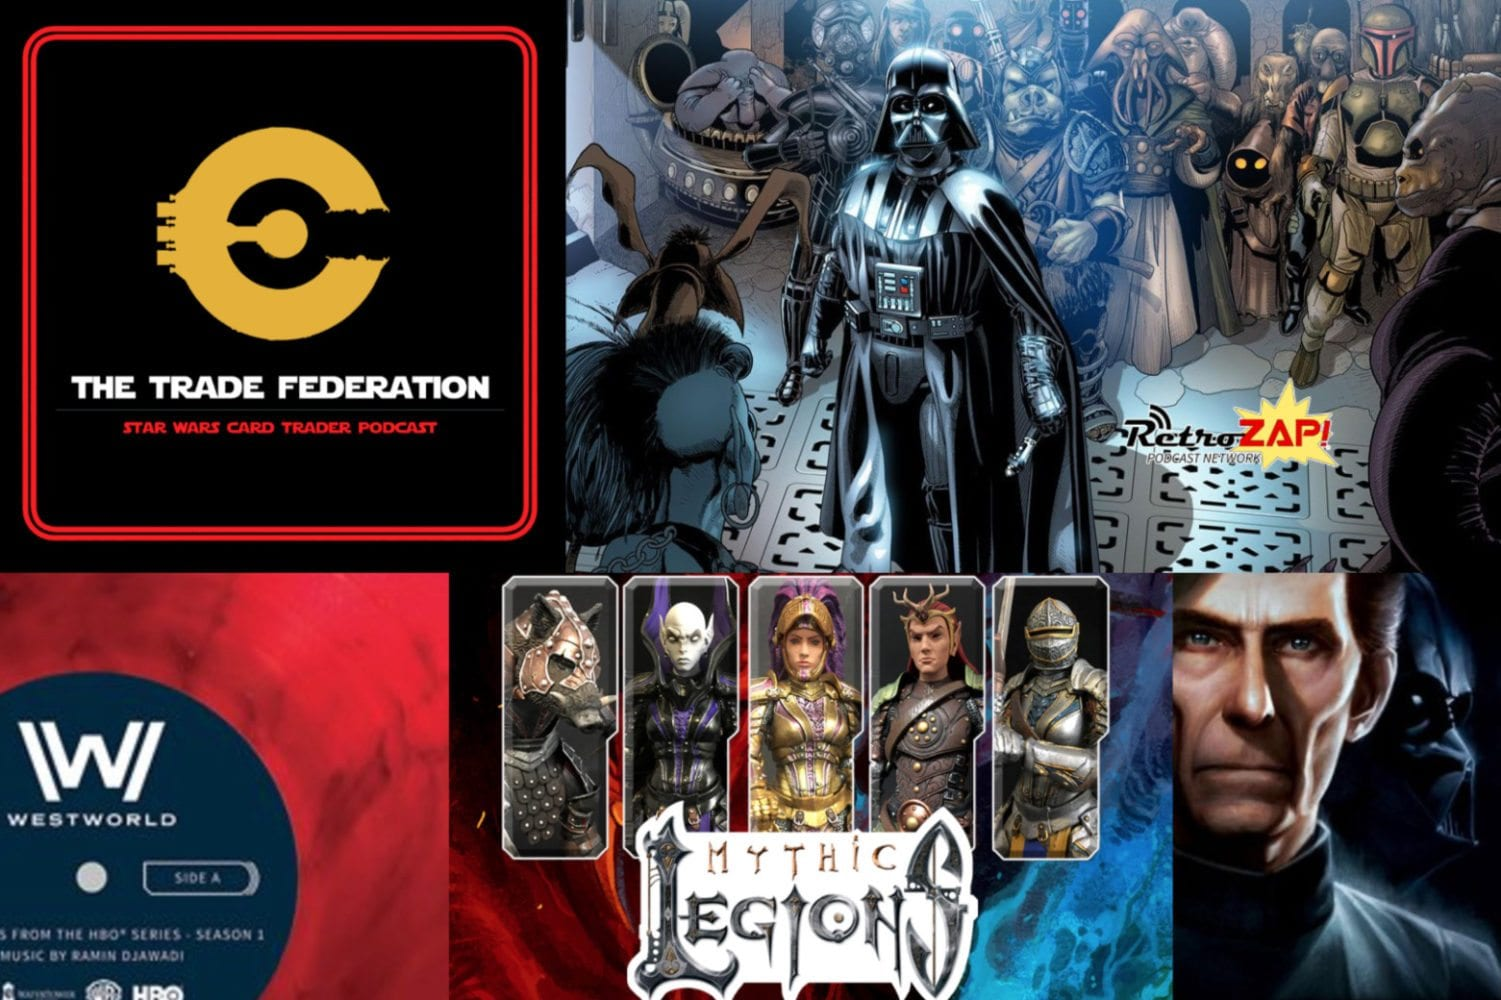 Trade Federation Podcast 88 - #TradeFedComics